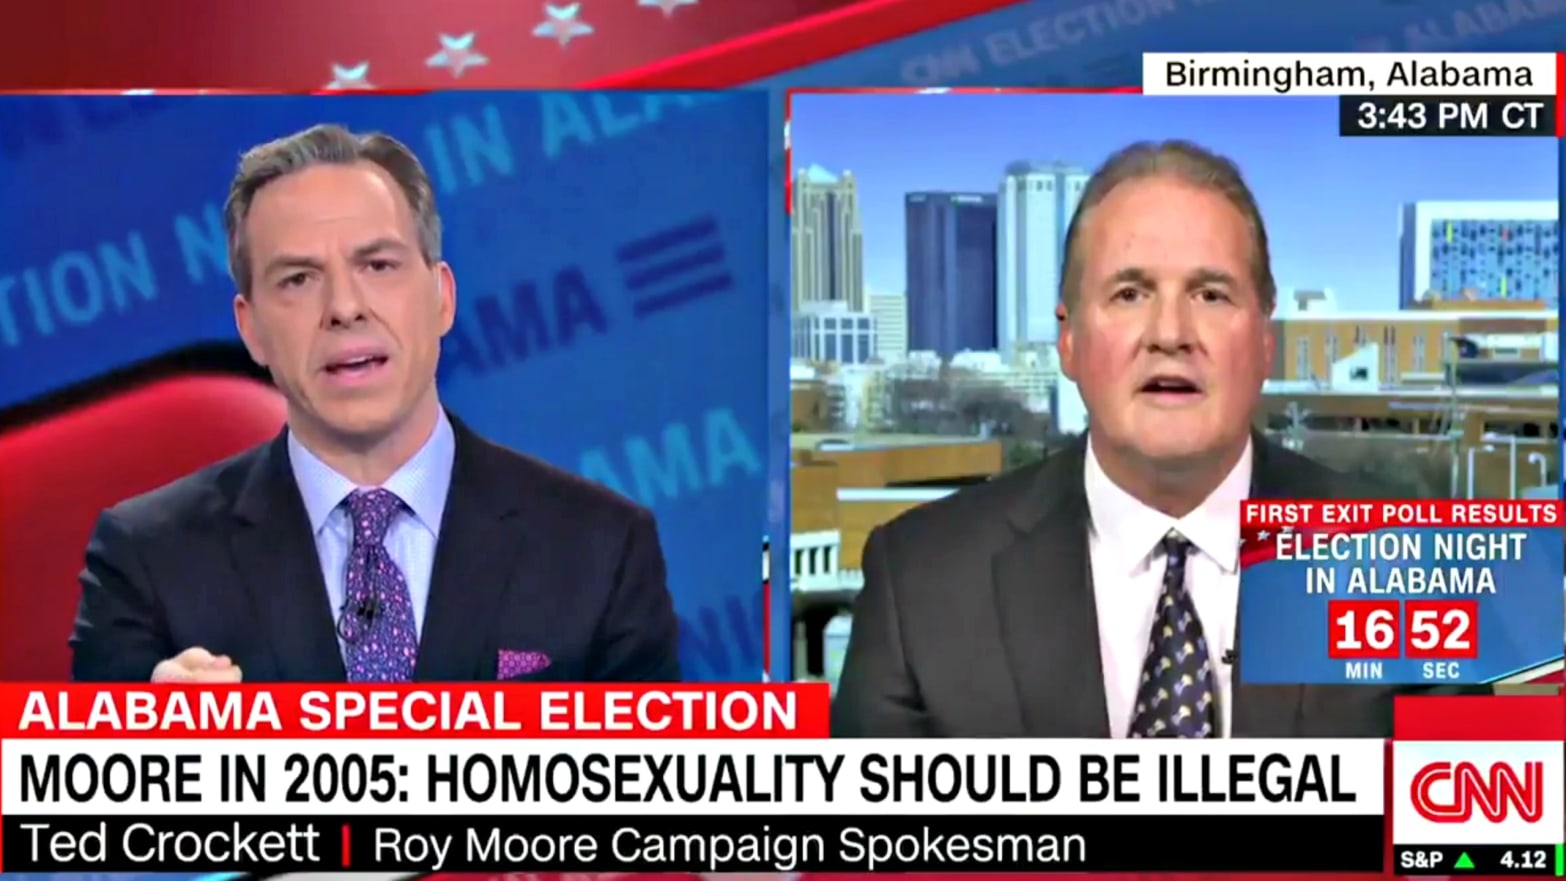 c695a4de Roy Moore Spokesman to CNN: He 'Probably' Thinks Being Gay Should Be Illegal